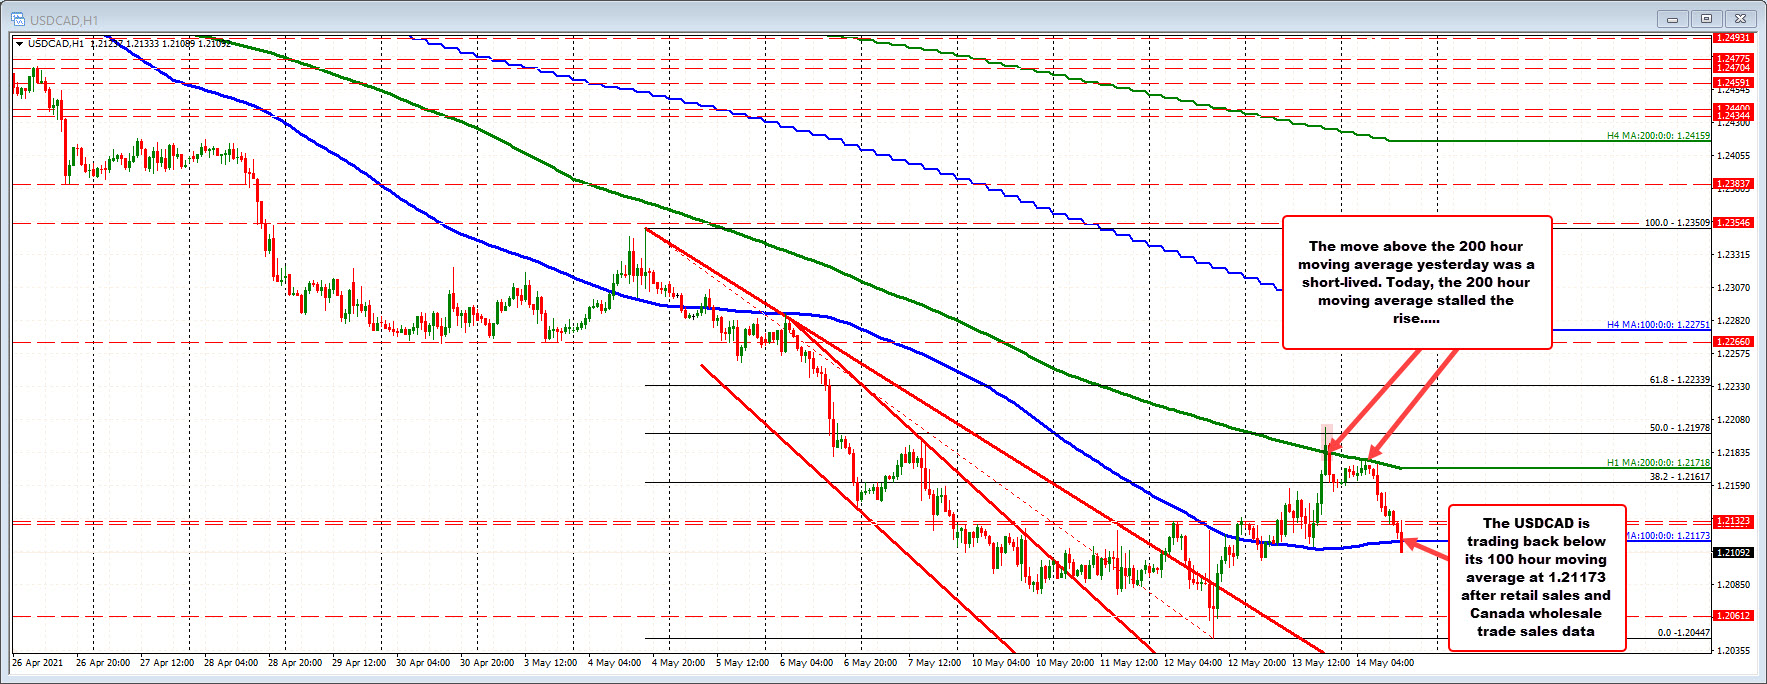 USDCAD falls below its 100 hour moving average